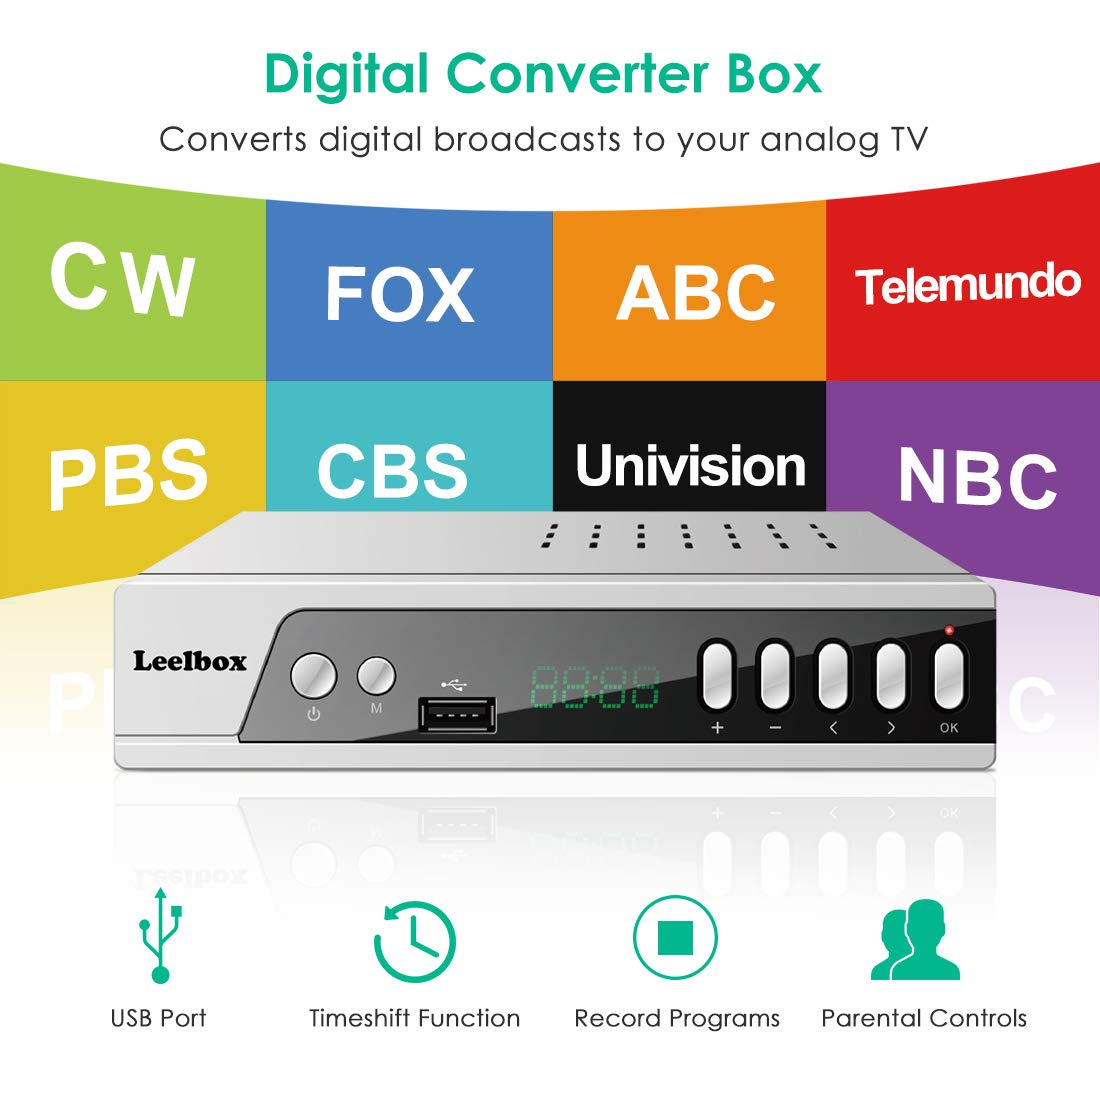 Digital Converter Box,Leelbox S3 ATSC Converter Box for Analog TV,HD 1080P  HDTV Set Top Box for Recording PVR,Pause Live TV,USB Multimedia Playback